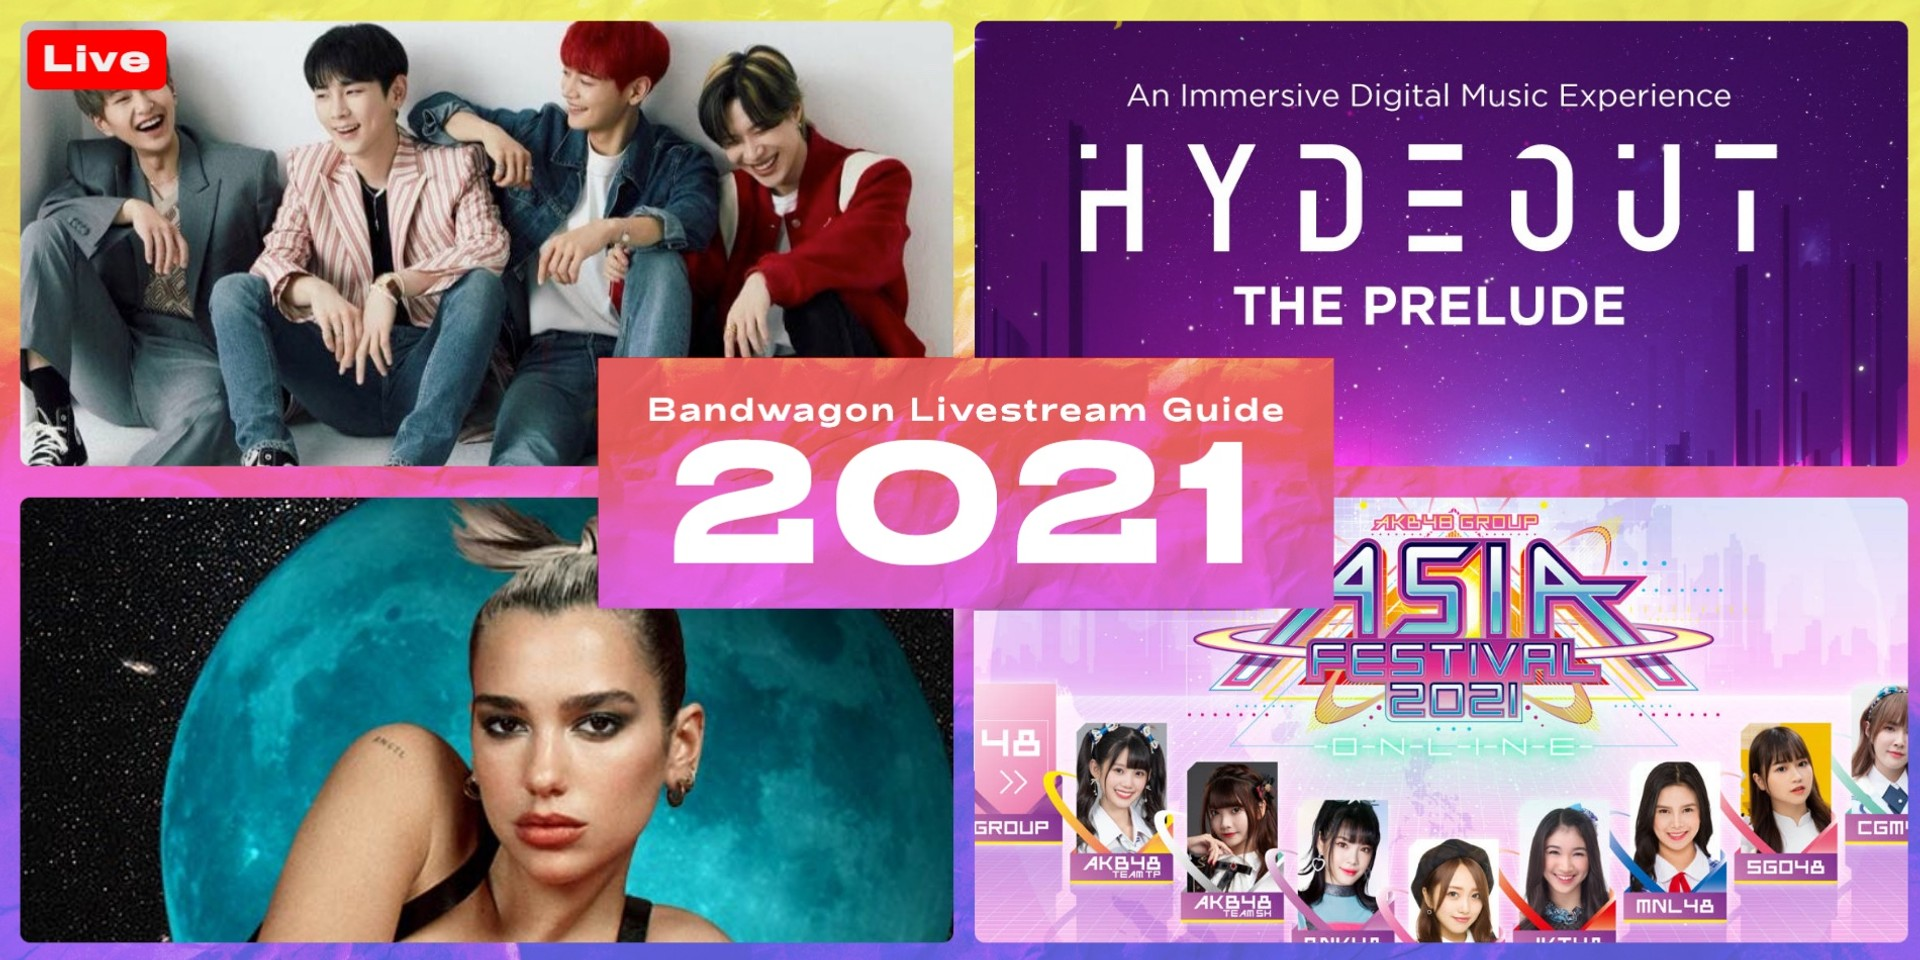 Online concerts and festivals to stream in 2021 - Hydeout, SHINee, Dua Lipa, AKB48 Group, and more